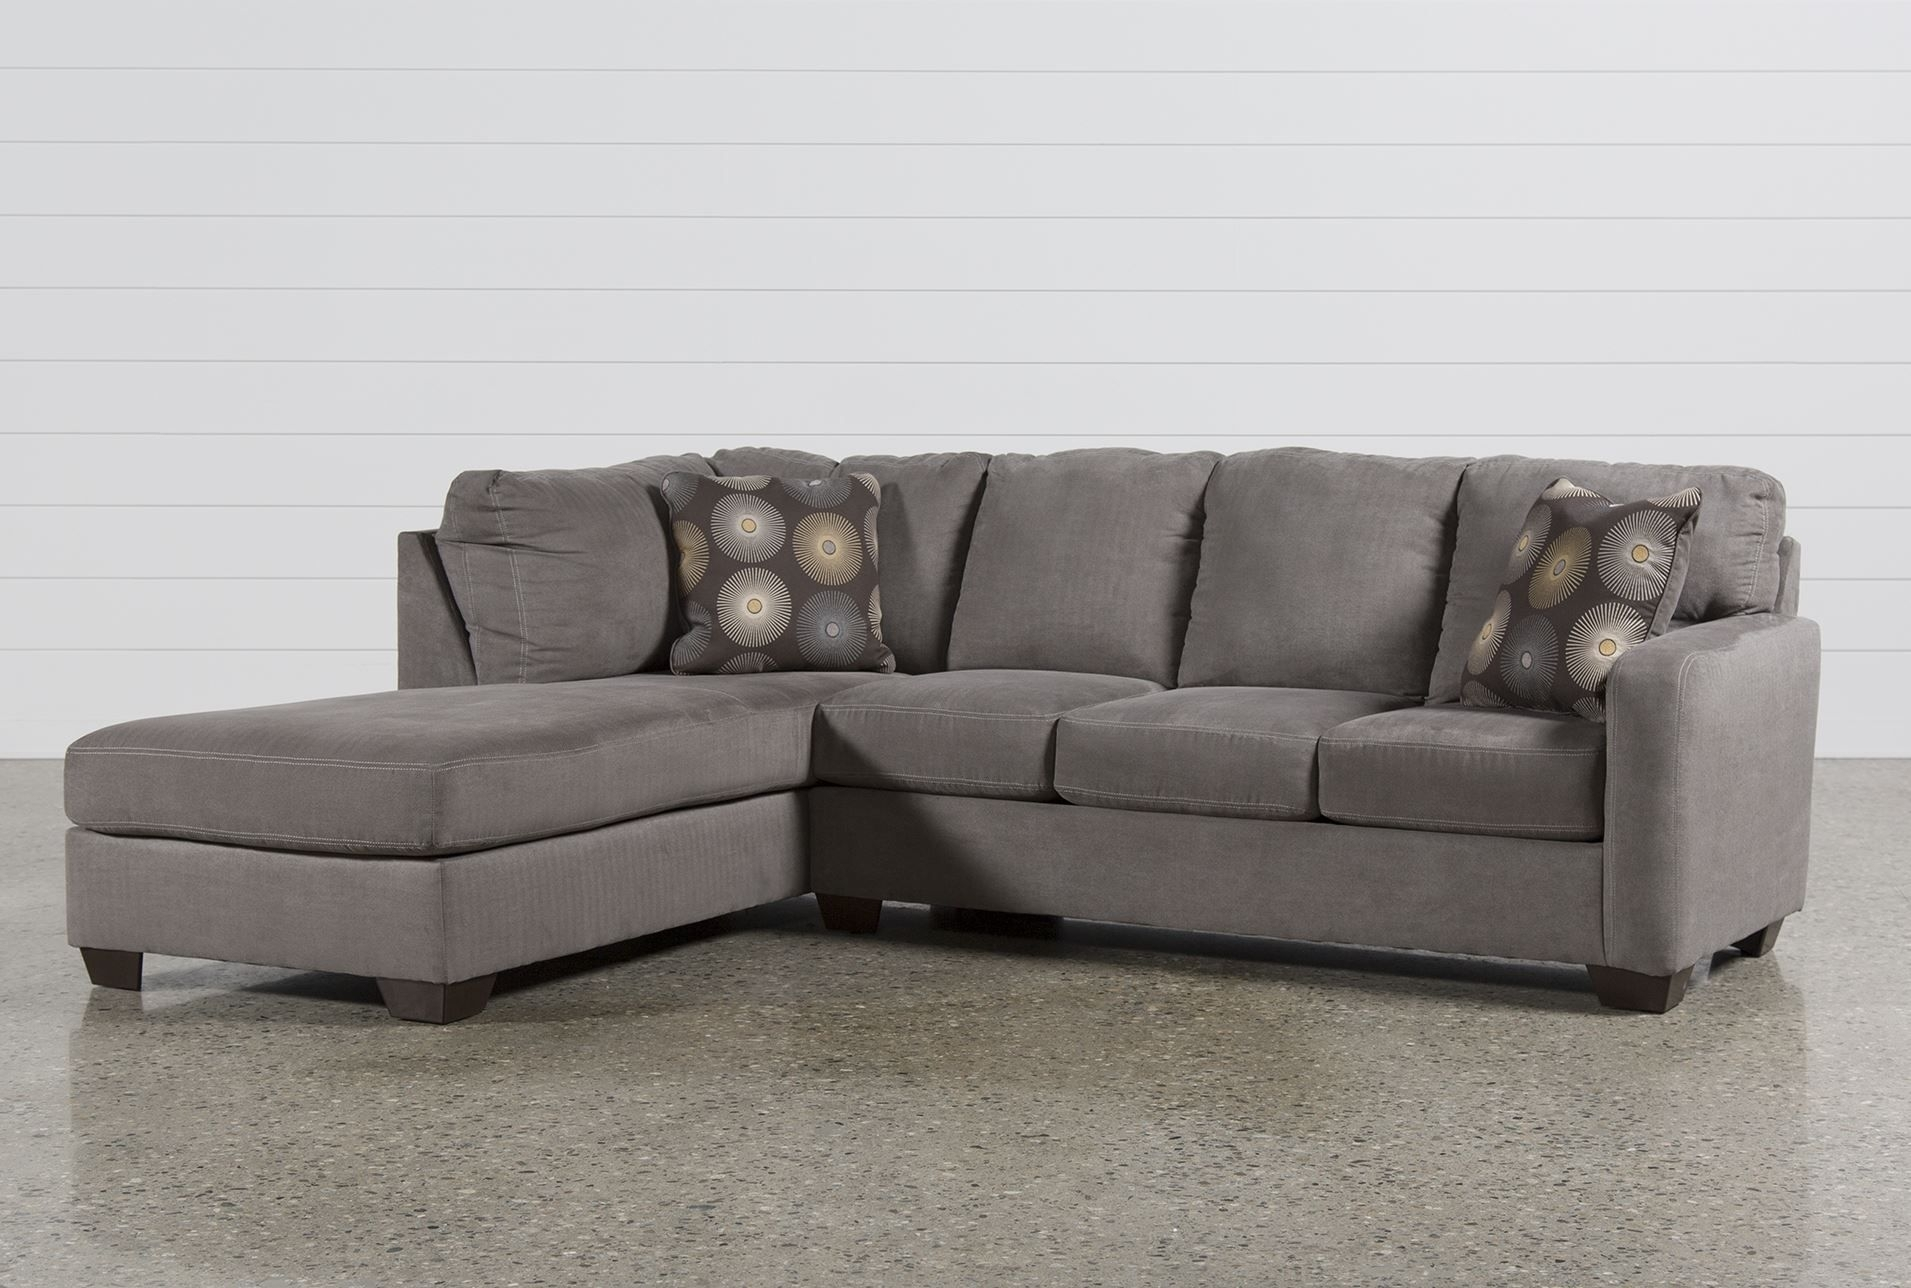 Zella Charcoal 2 Piece Sectional W/laf Chaise - Signature in Aspen 2 Piece Sleeper Sectionals With Laf Chaise (Image 30 of 30)